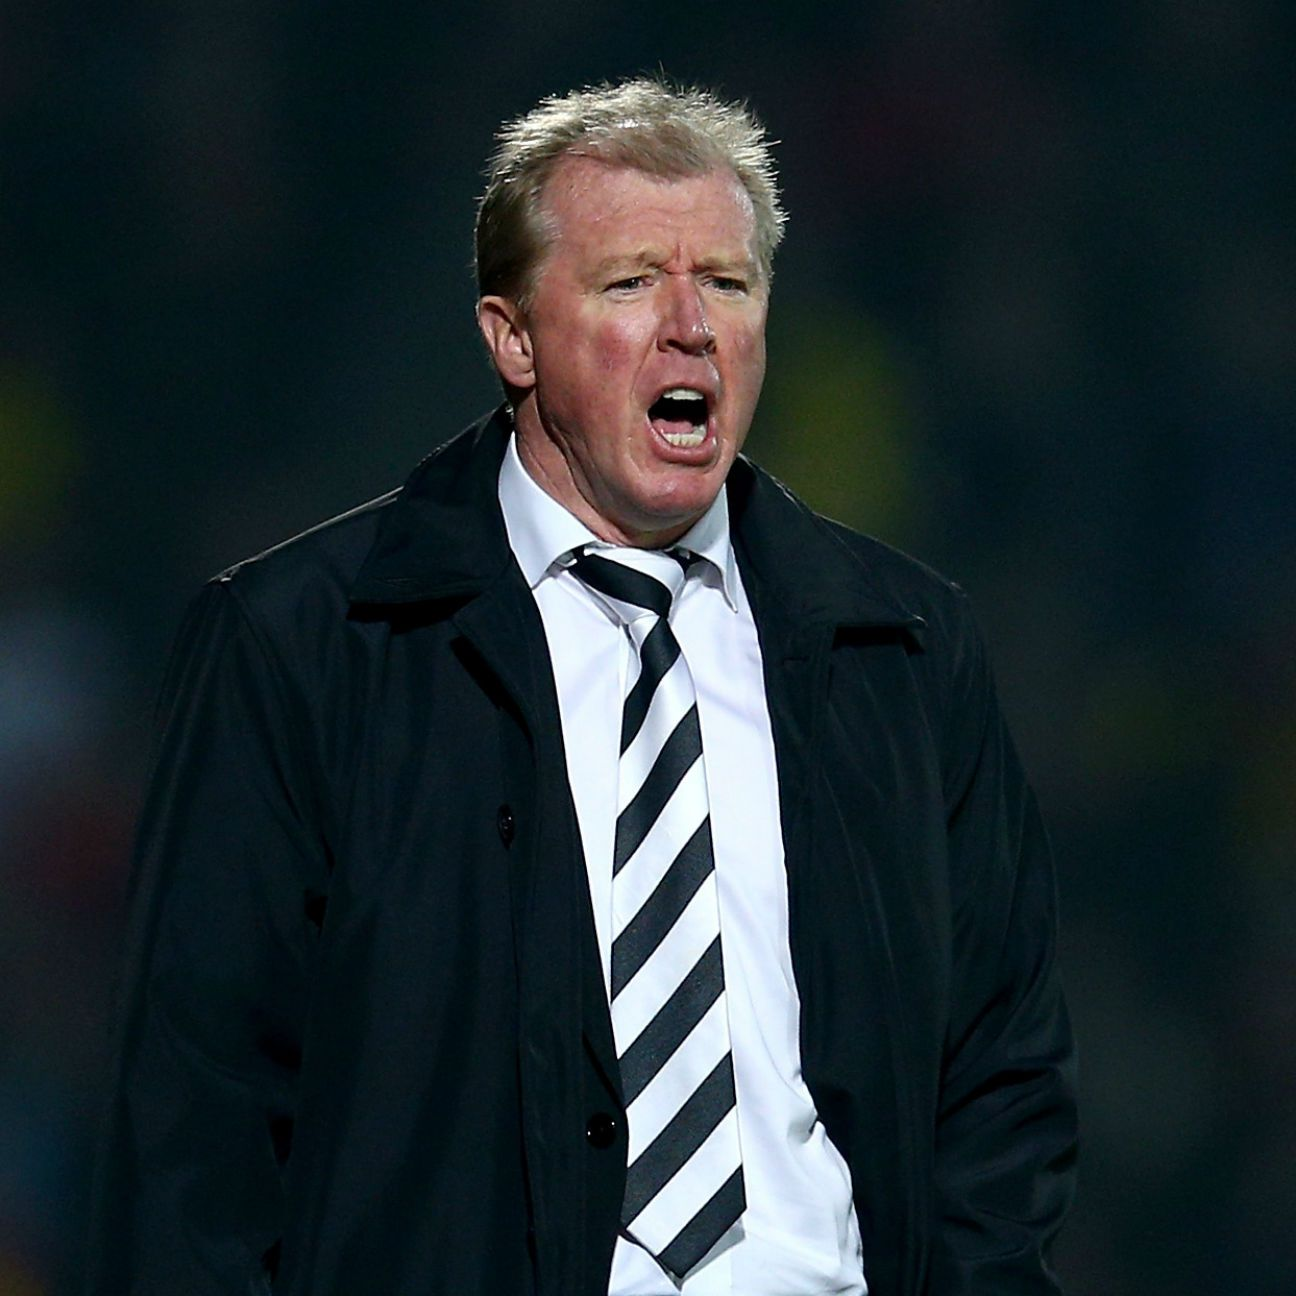 Steve McClaren's Newcastle can potentially widen the gap between themselves and the relegation zone with a win over Leicester.